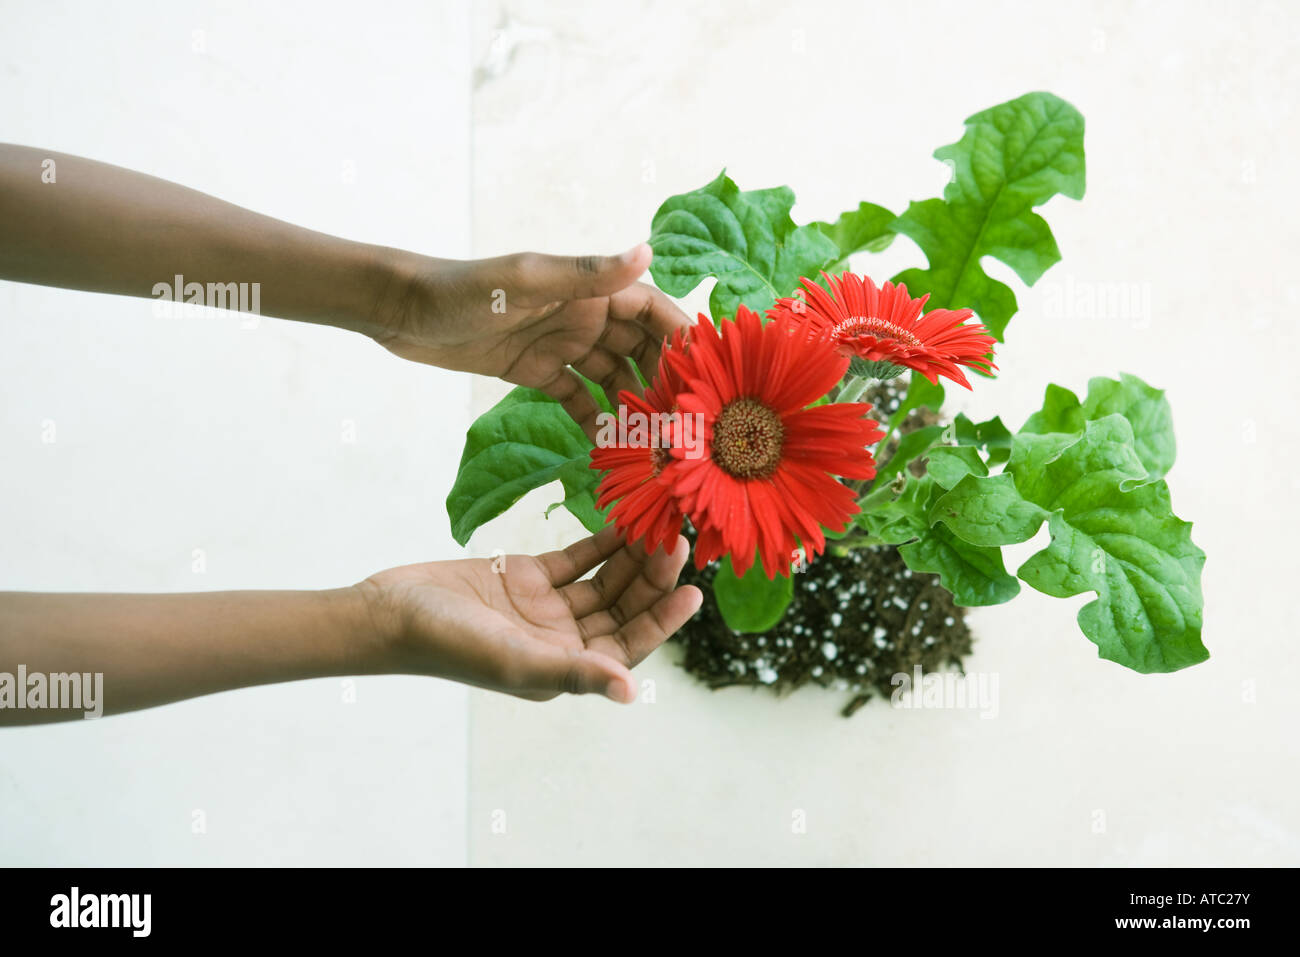 Hands touching gerbera daisies, viewed from directly above - Stock Image